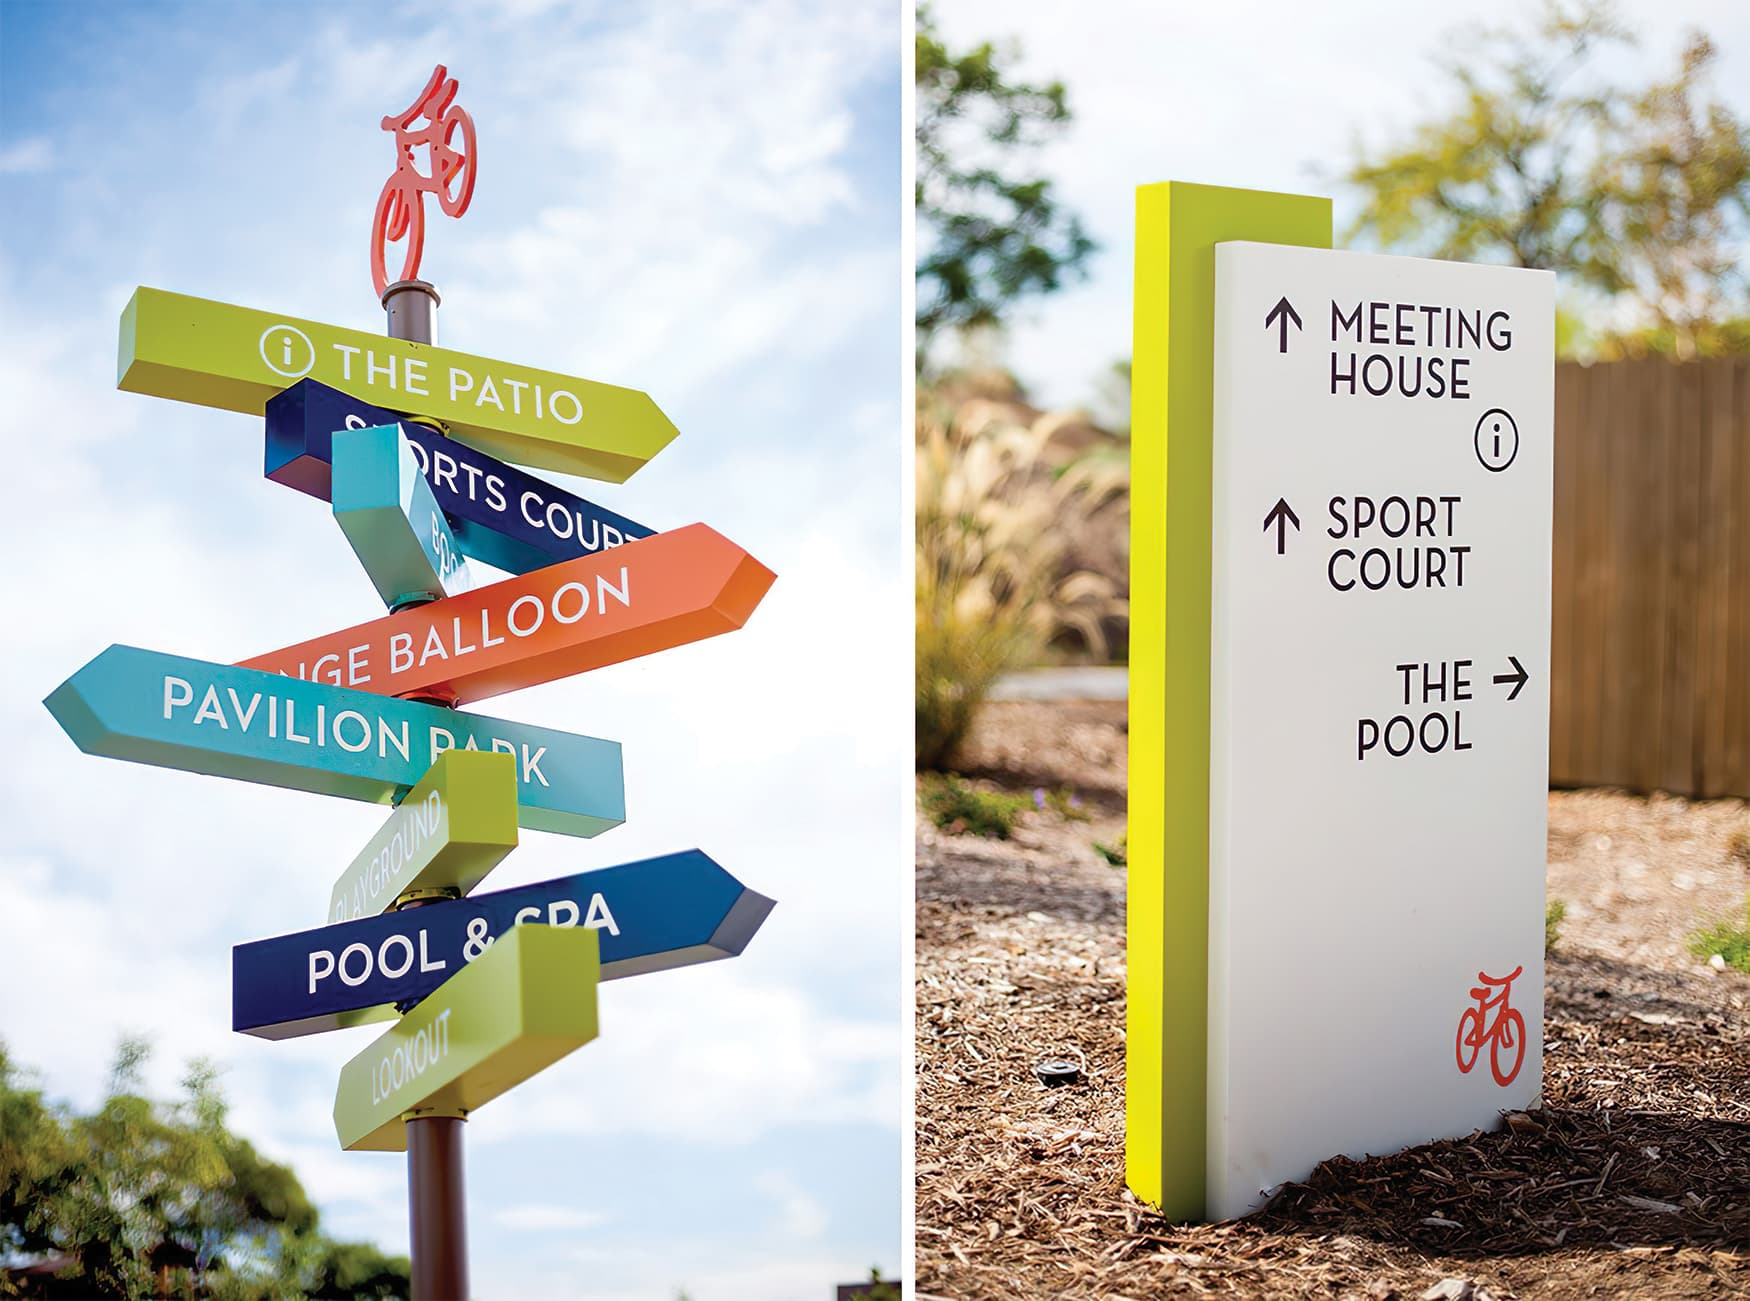 RSM Design worked with Great Park Neighborhoods to create a wayfinding and graphics system for Beacon Park, a residential neighborhood in Irvine, California. Pedestrian Wayfinding Directional.